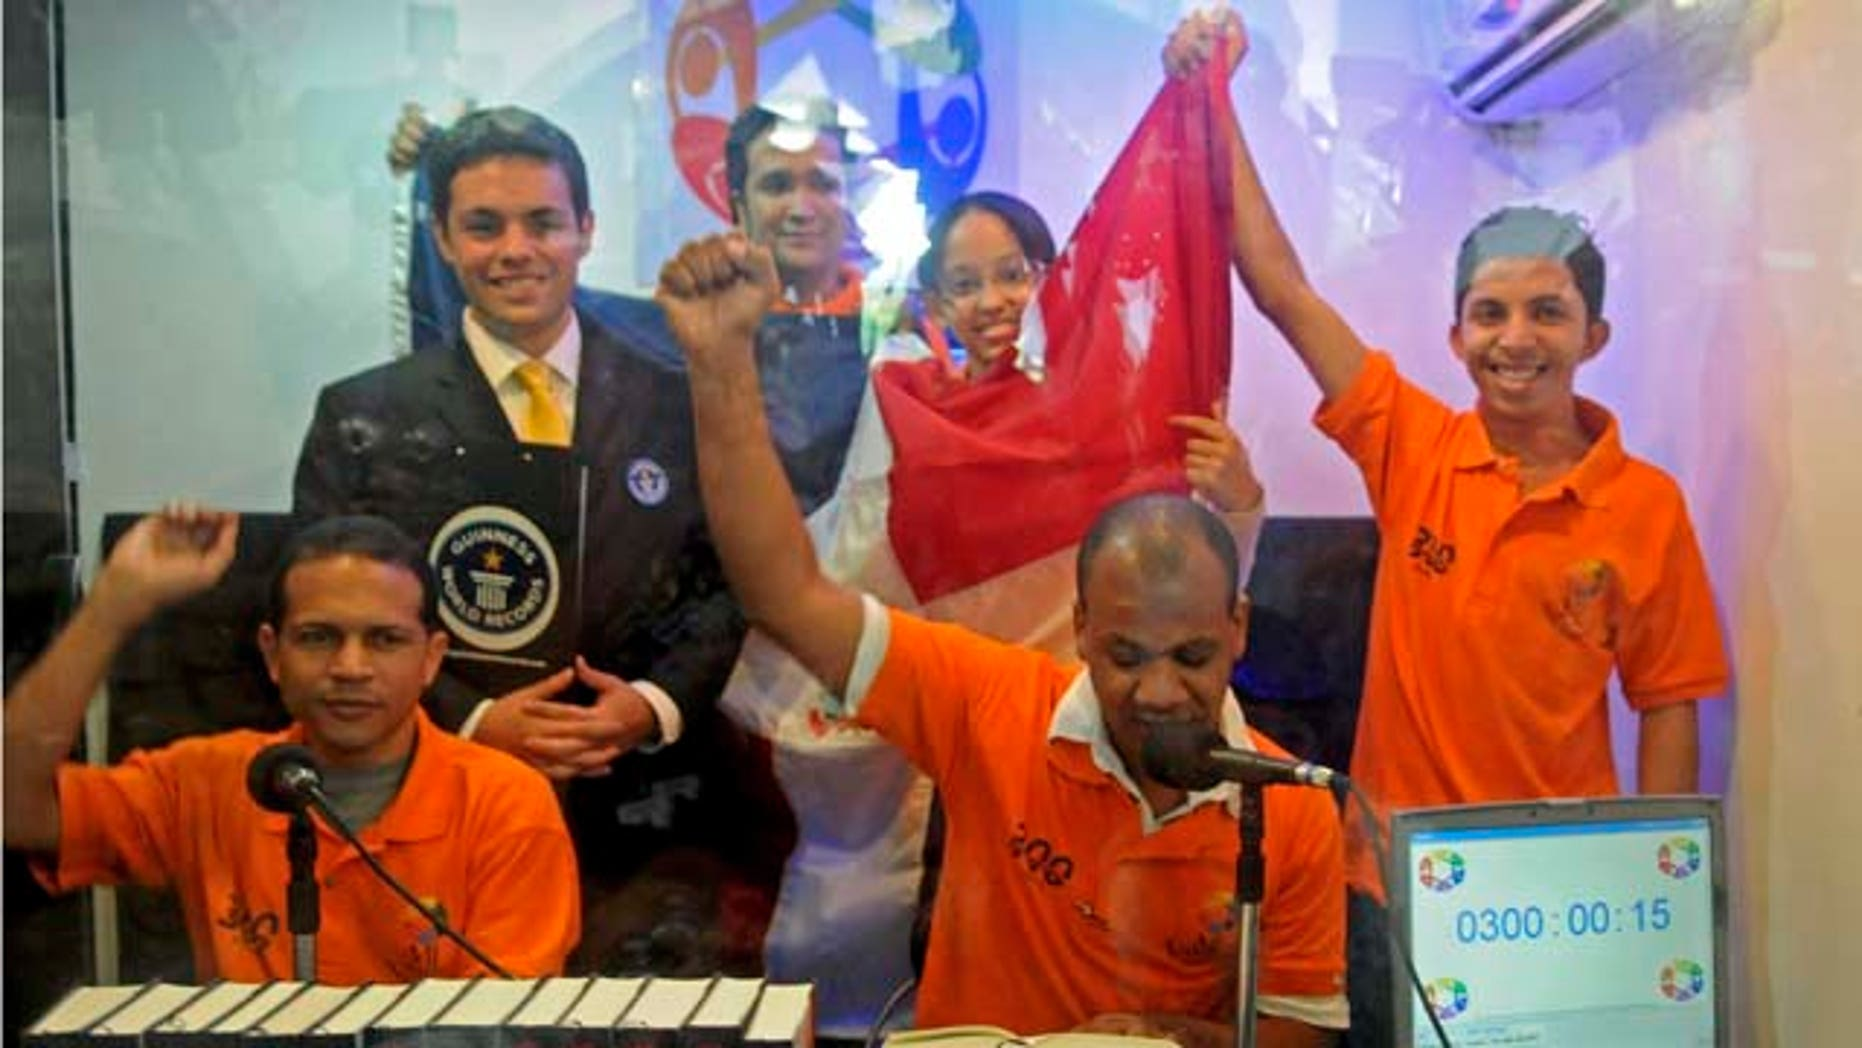 Michael Janela, second from left, judge of the Guinness World Records, poses with Dominican students, from left, Carlos Jose Reyes, Cristian Rodriguez, Martha Esther Madera, Randolfo Jimenez and Jose Manuel Bueno.